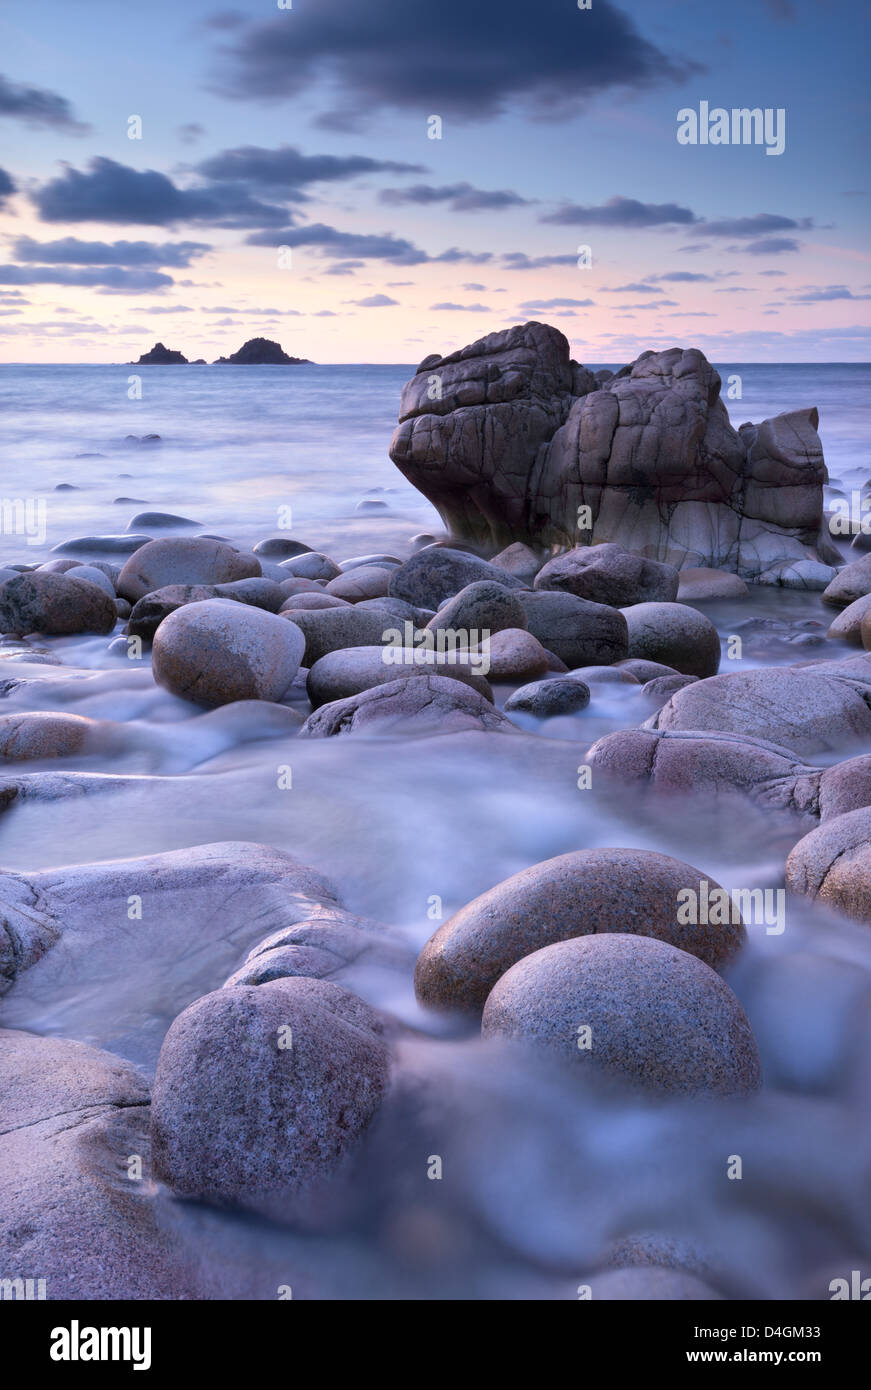 Twilight over Porth Nanven cove near Land's End, Cornwall, England. Winter (December) 2012. - Stock Image